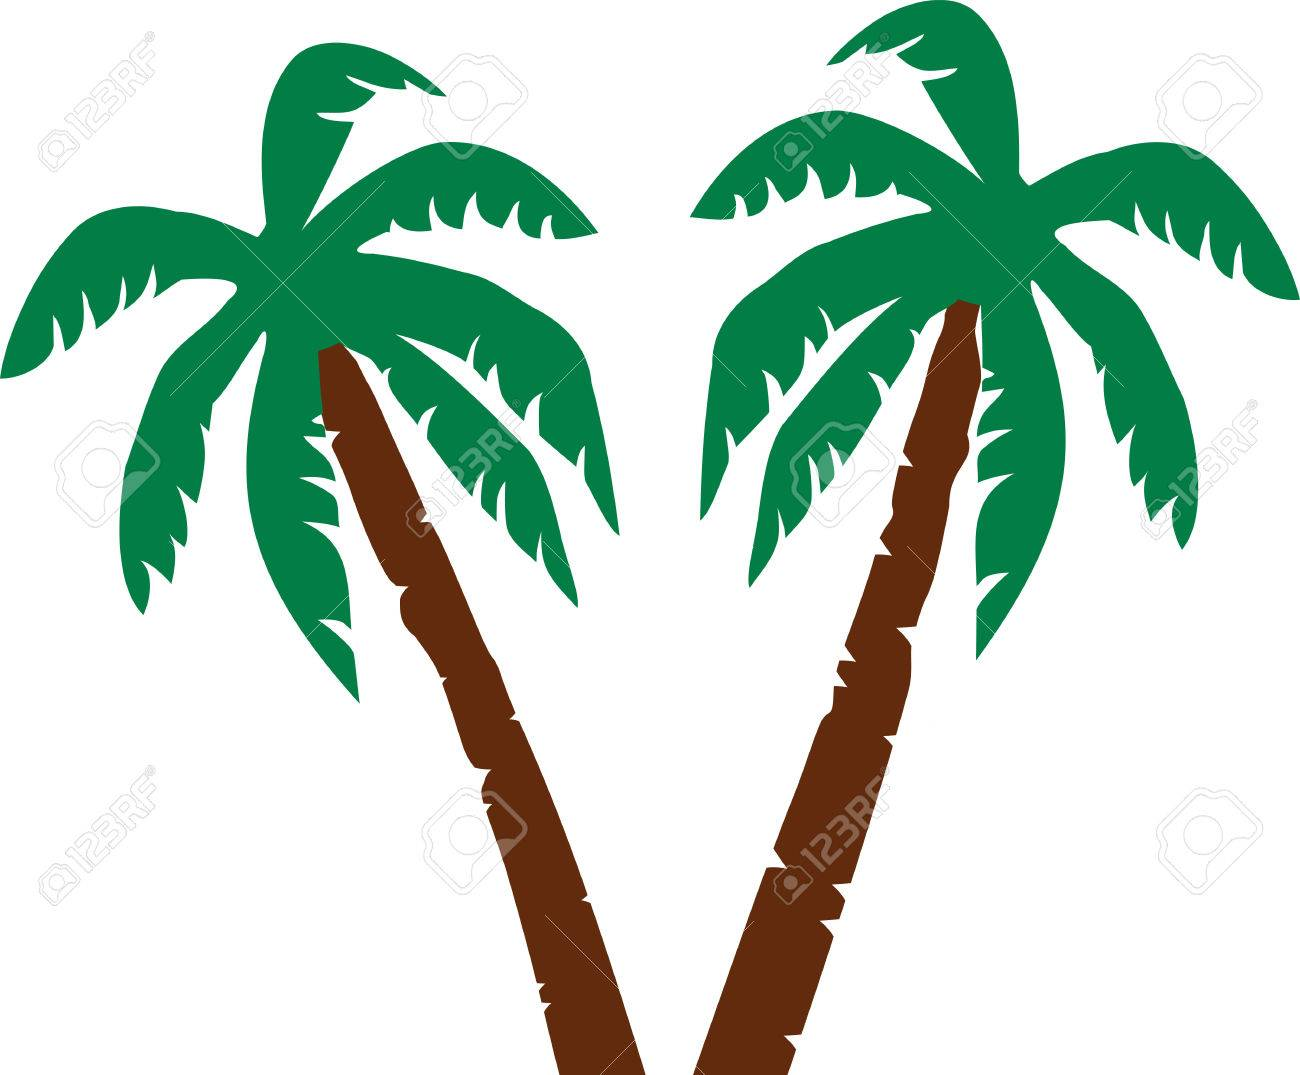 palm trees cartoon royalty free cliparts vectors and stock rh 123rf com palm tree cartoon drawing palm tree cartoon png